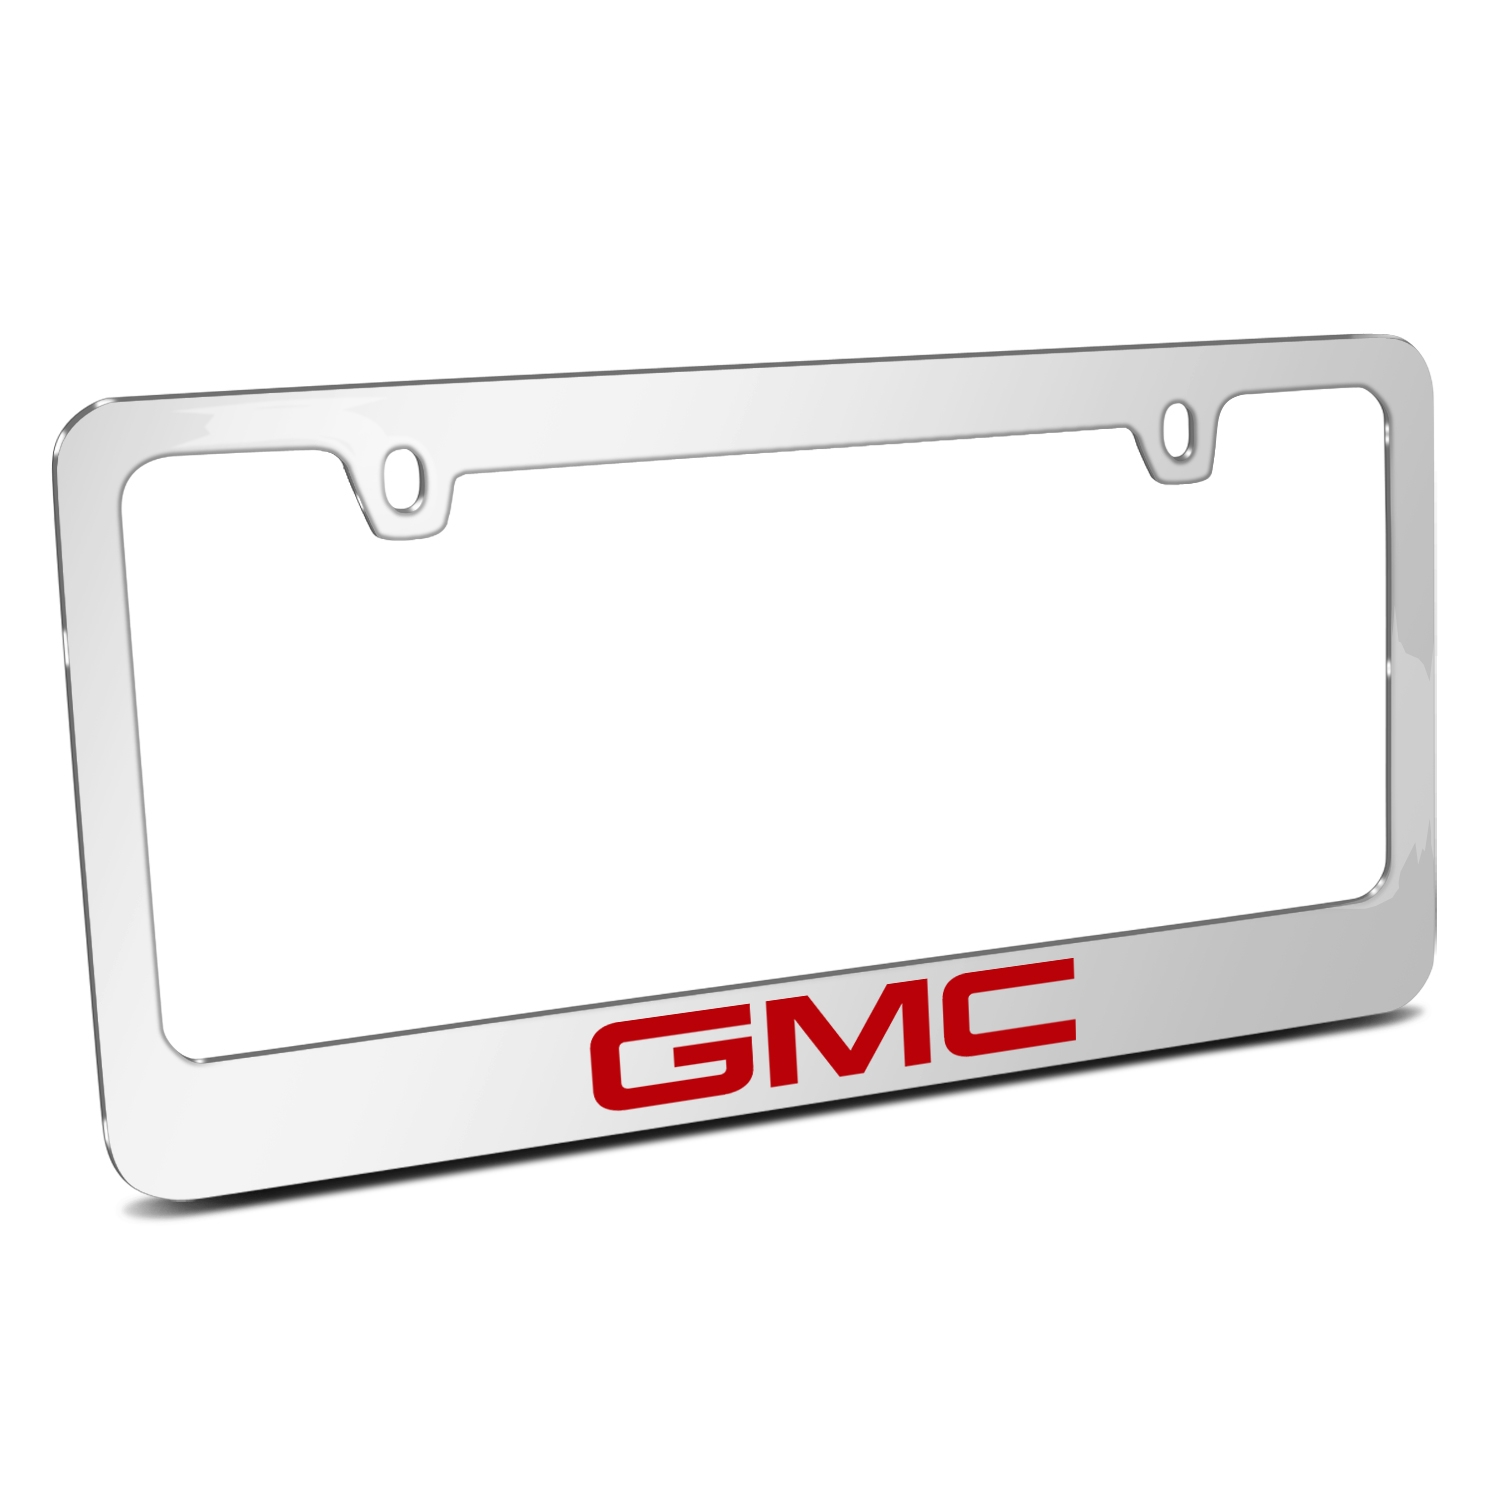 GMC Logo 2017 in Red Mirror Chrome Metal License Plate Frame